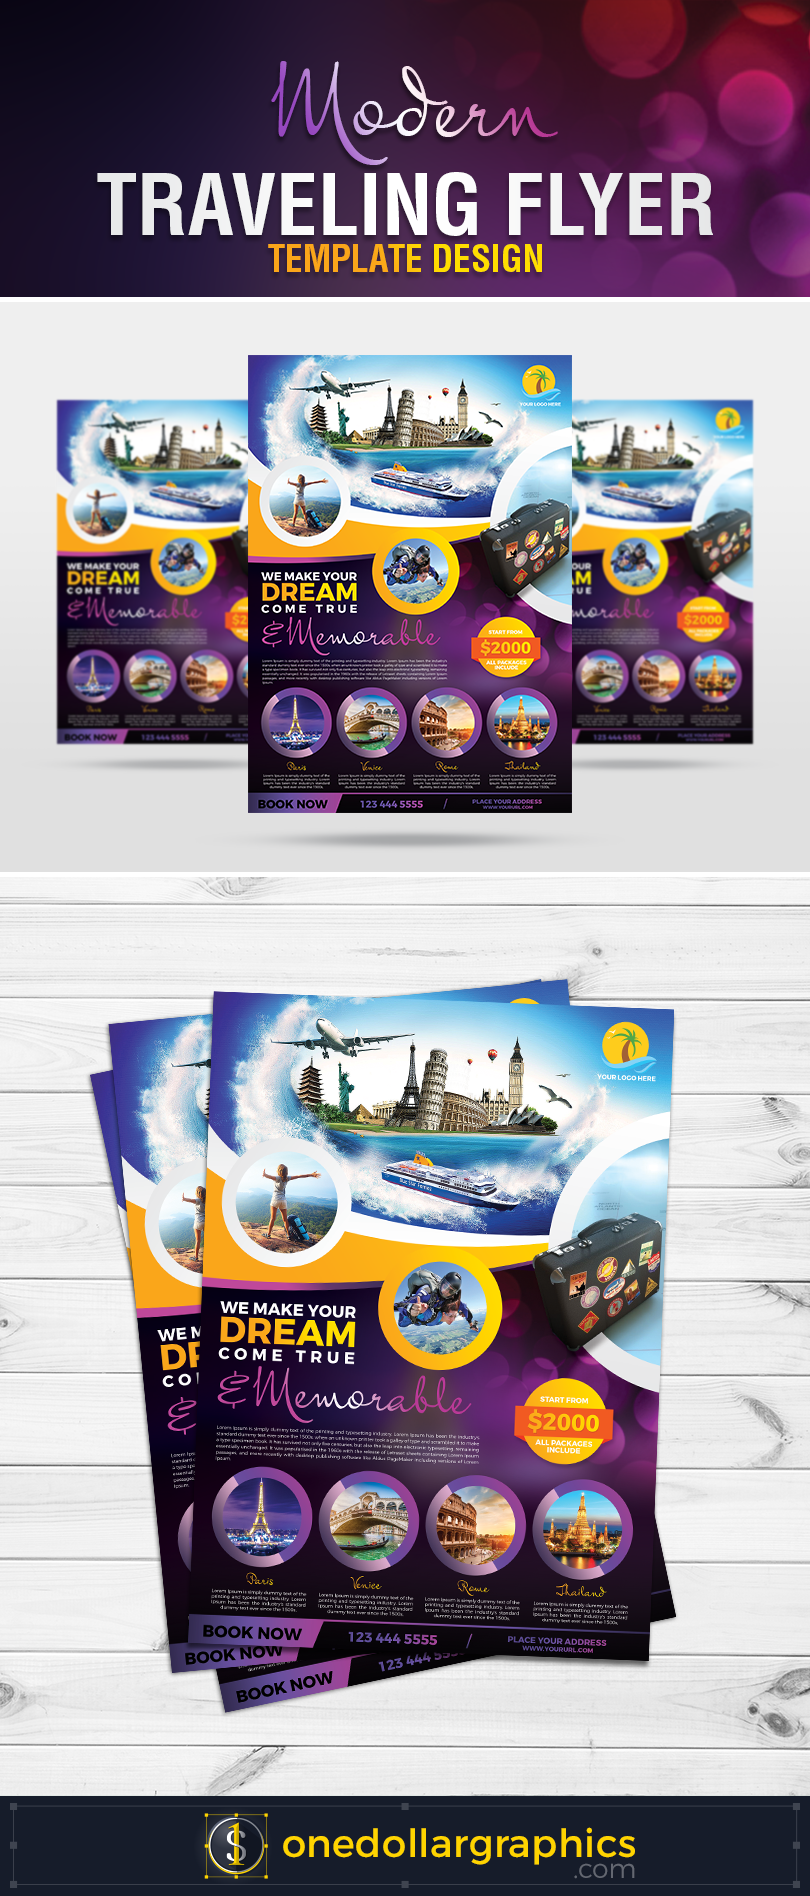 modern-traveling-flyer-template-design